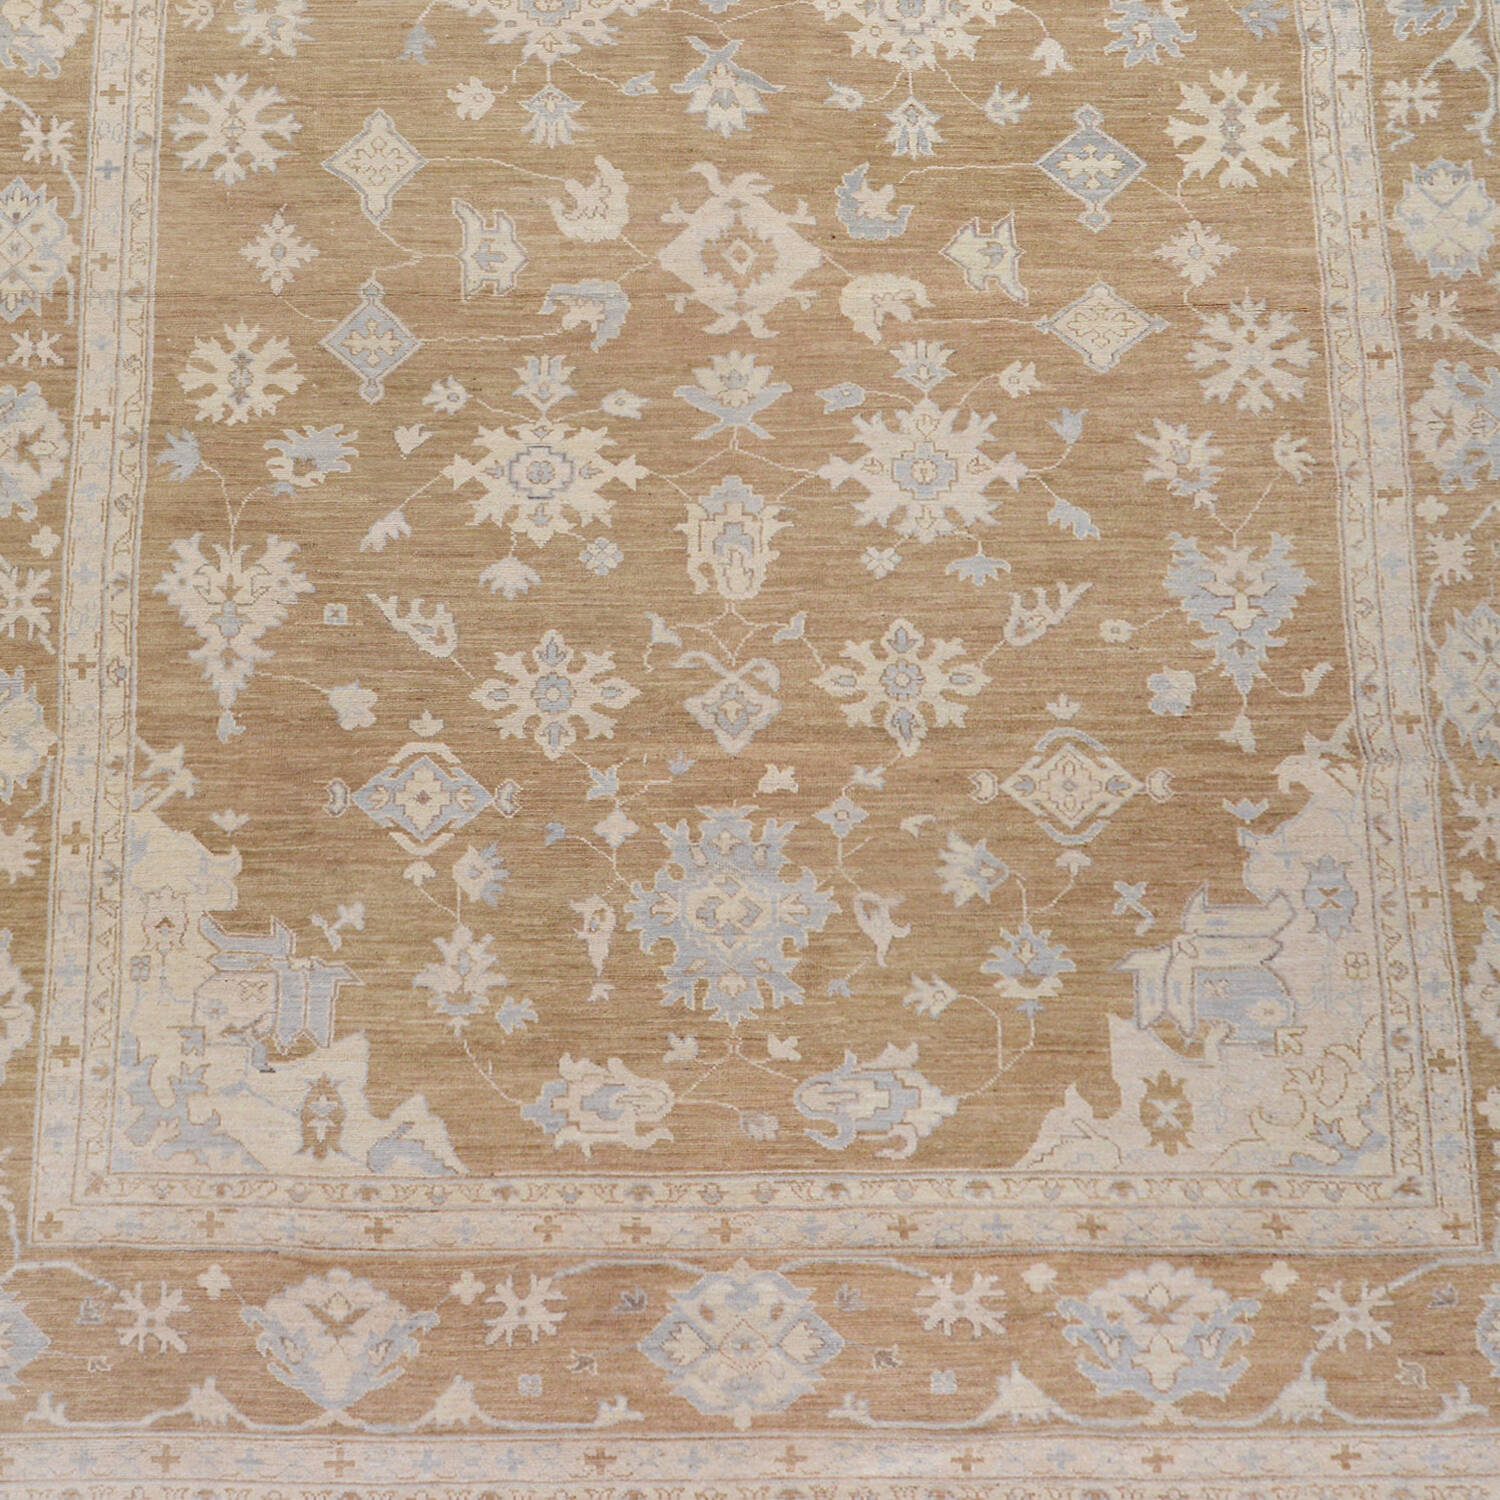 Muted Floral Oushak Turkish Area Rug 9x13 image 3